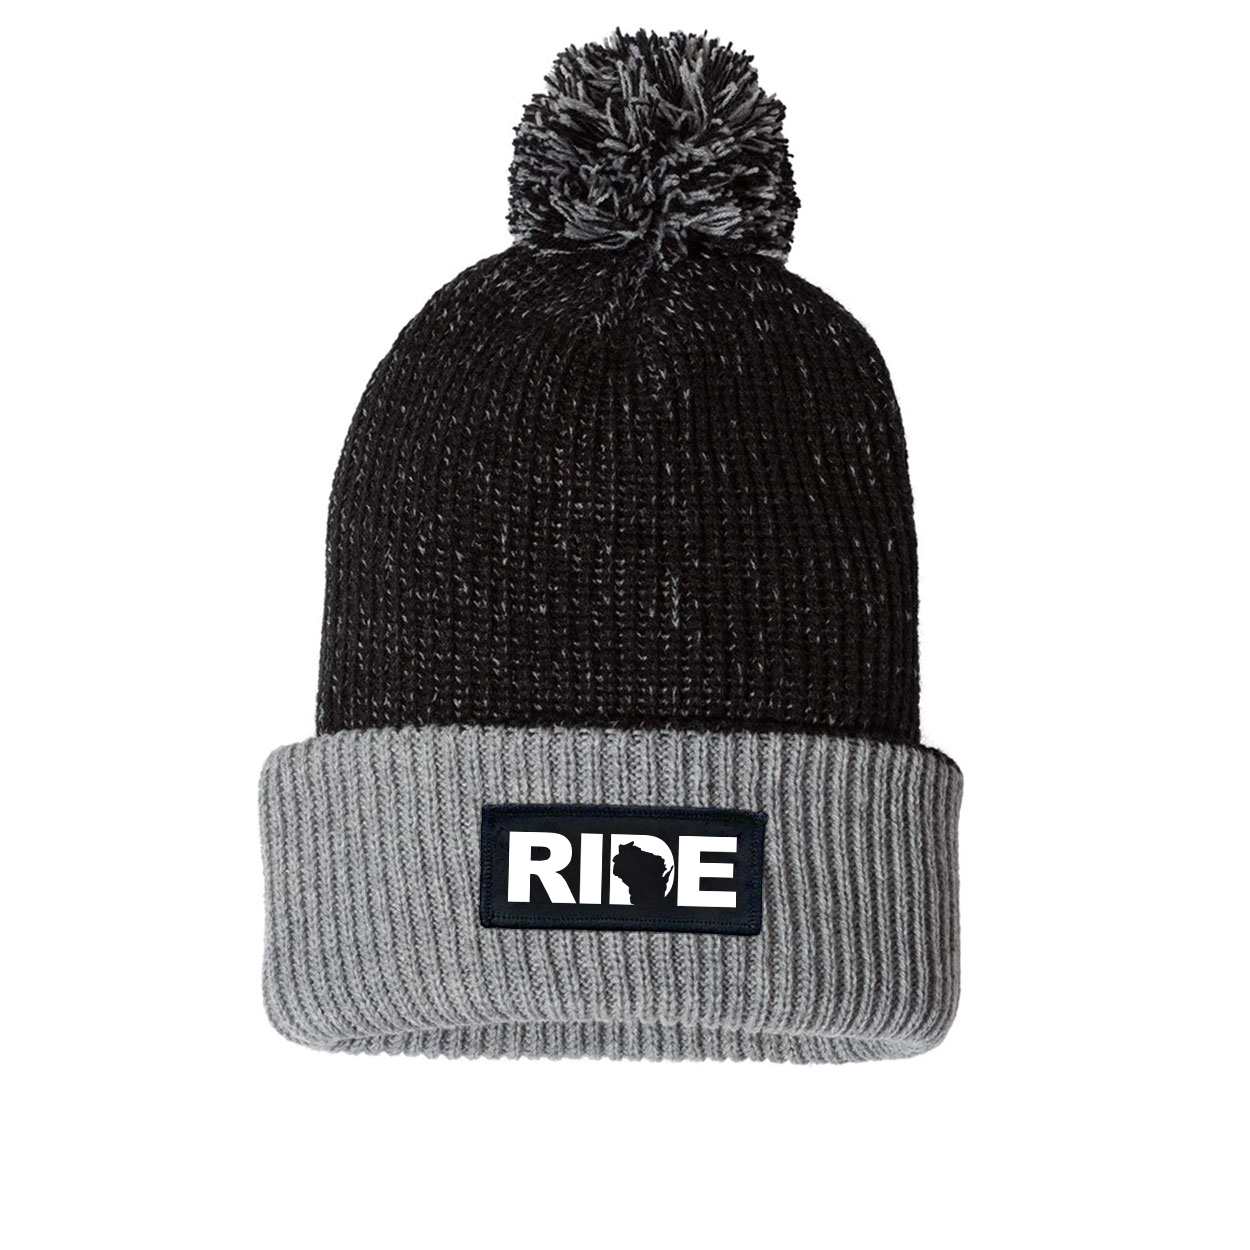 Ride Wisconsin Night Out Woven Patch Roll Up Pom Knit Beanie Black/Gray (White Logo)